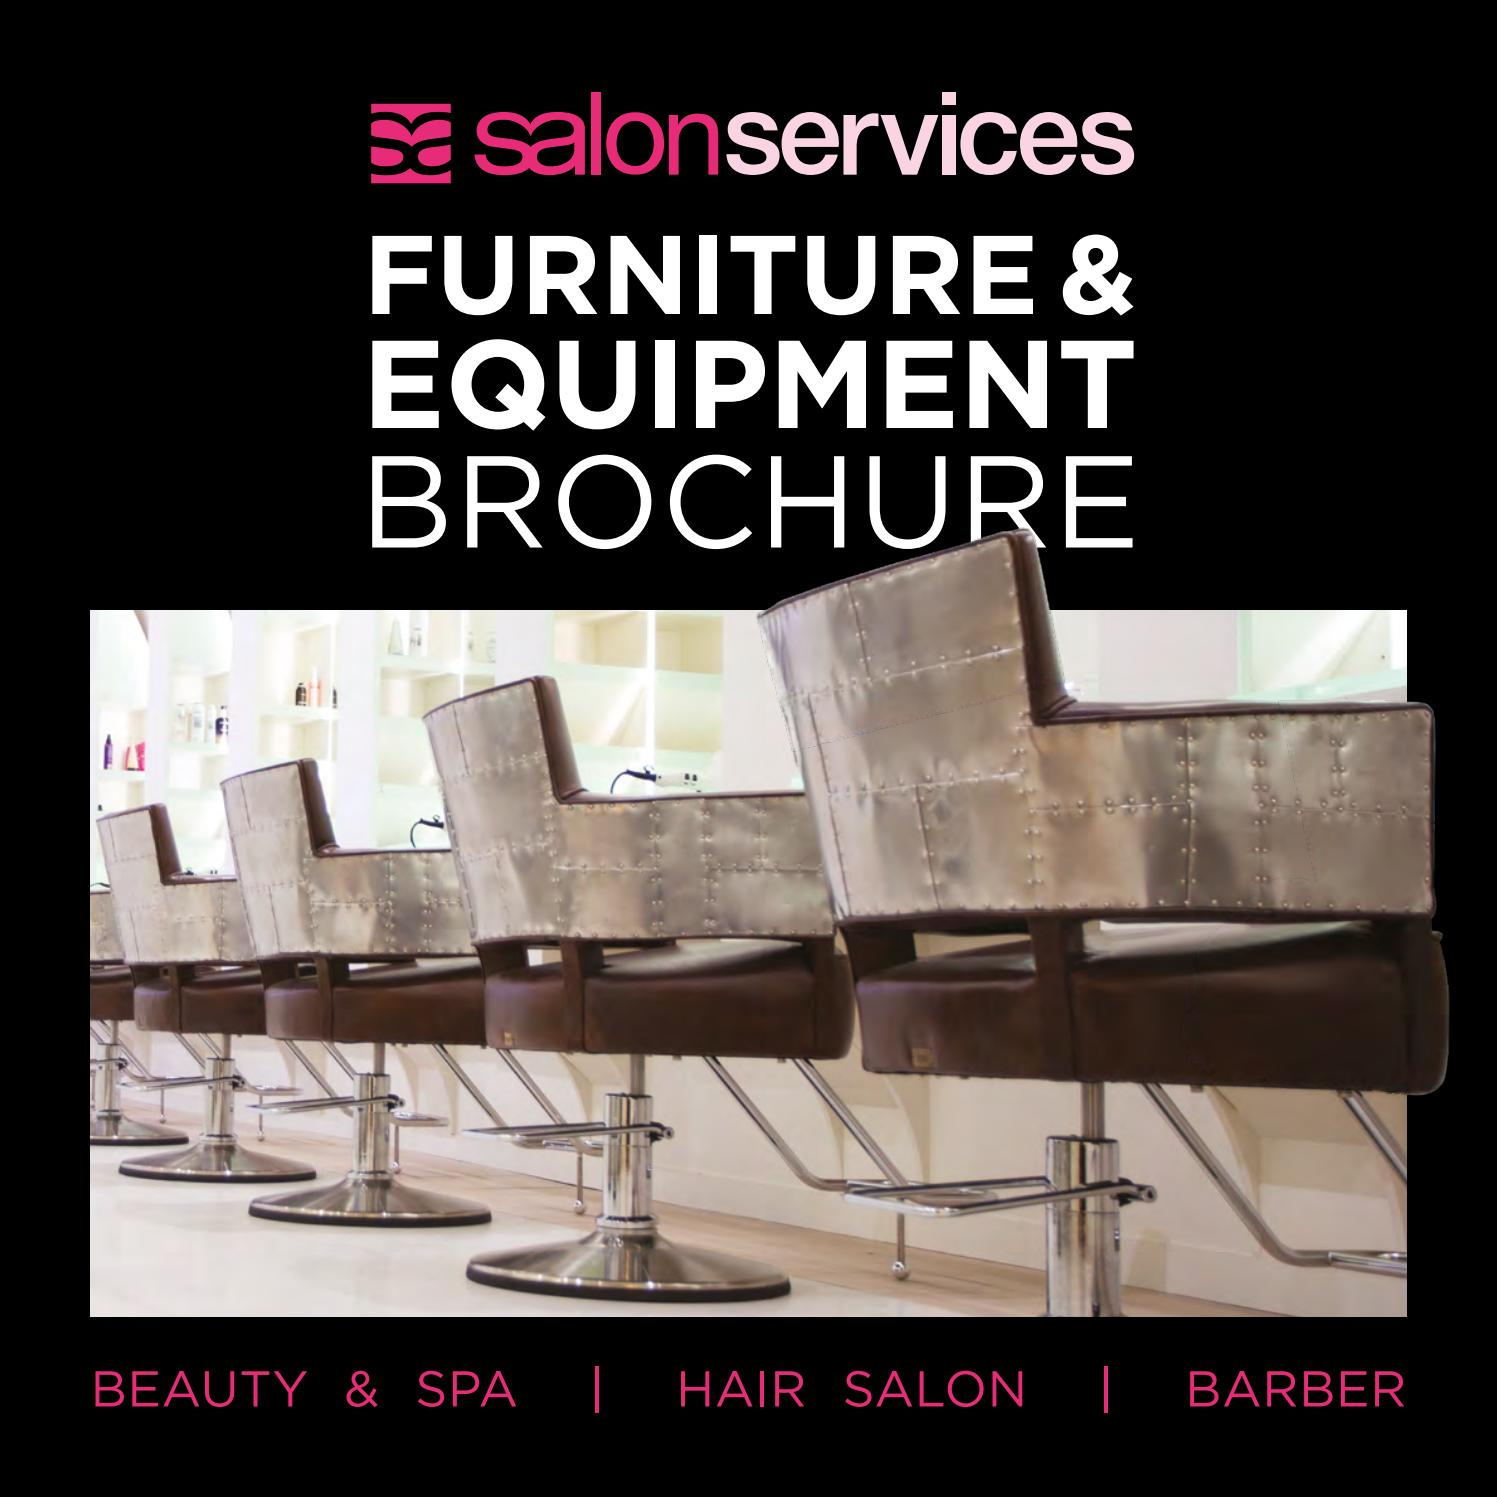 Salon Services Furniture Equipment Brochure 2020 By Sally Europe Issuu